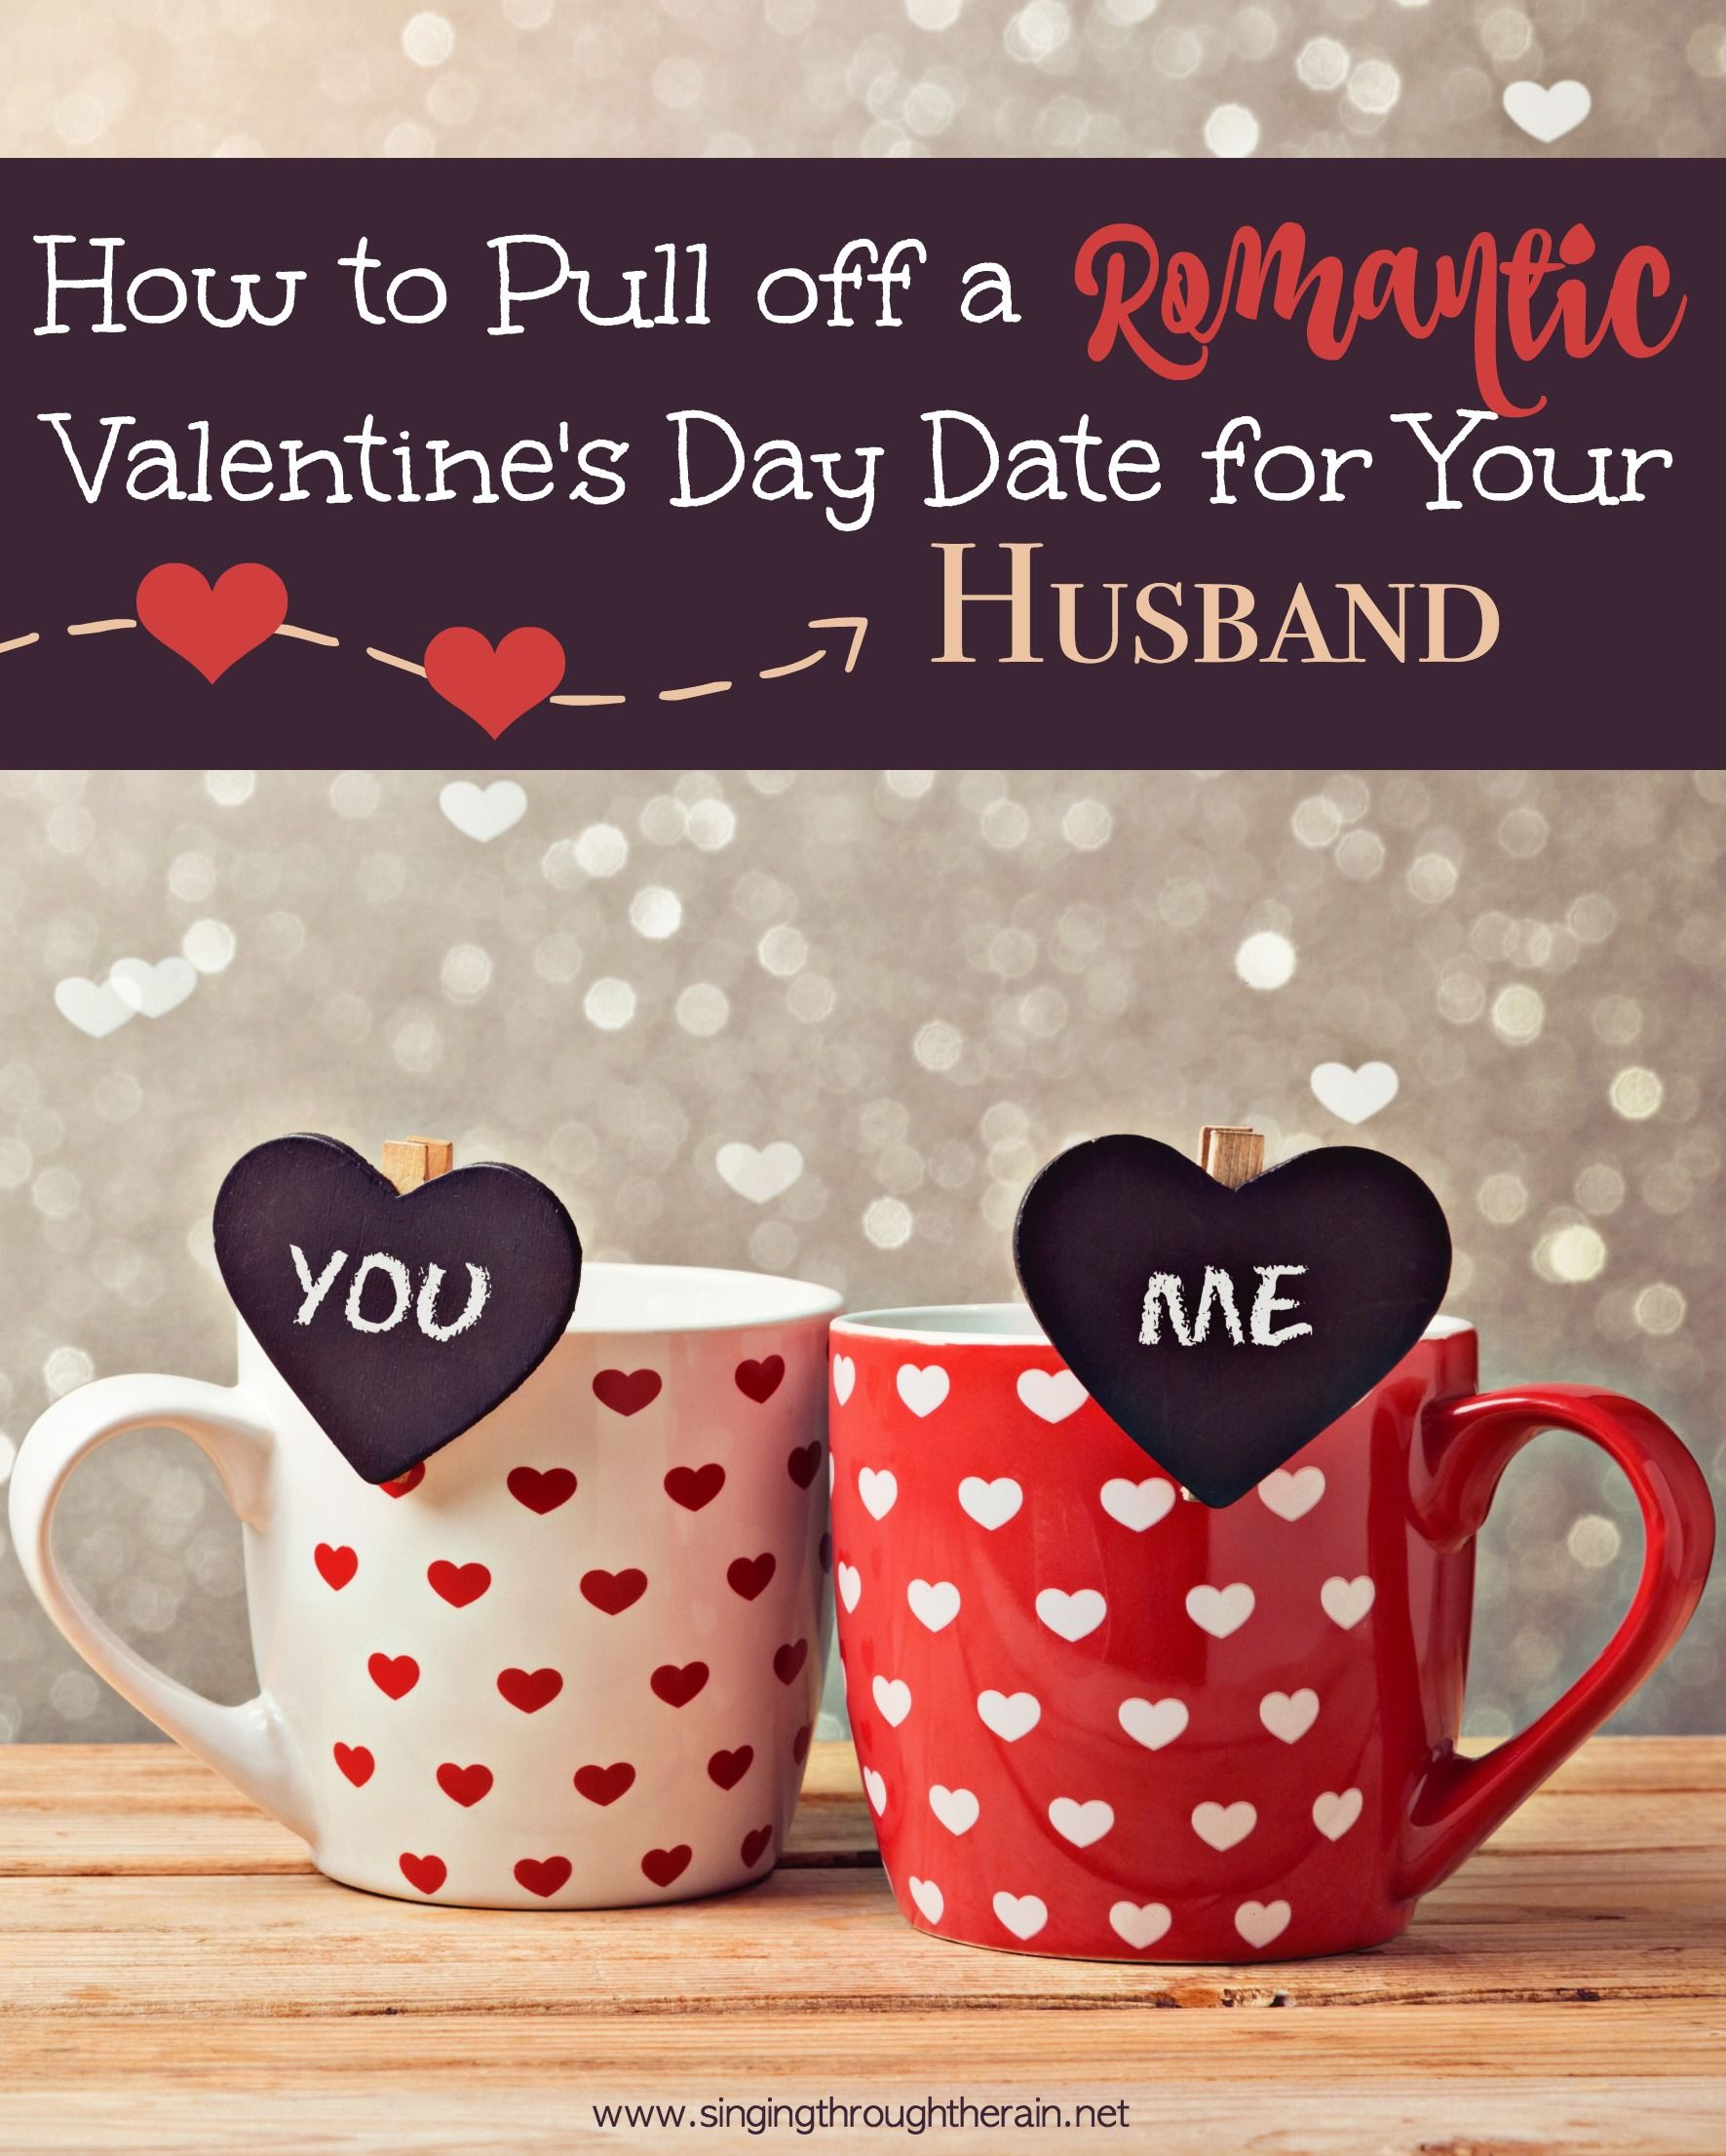 how to pull off a romantic valentine's day date | man faces, Ideas